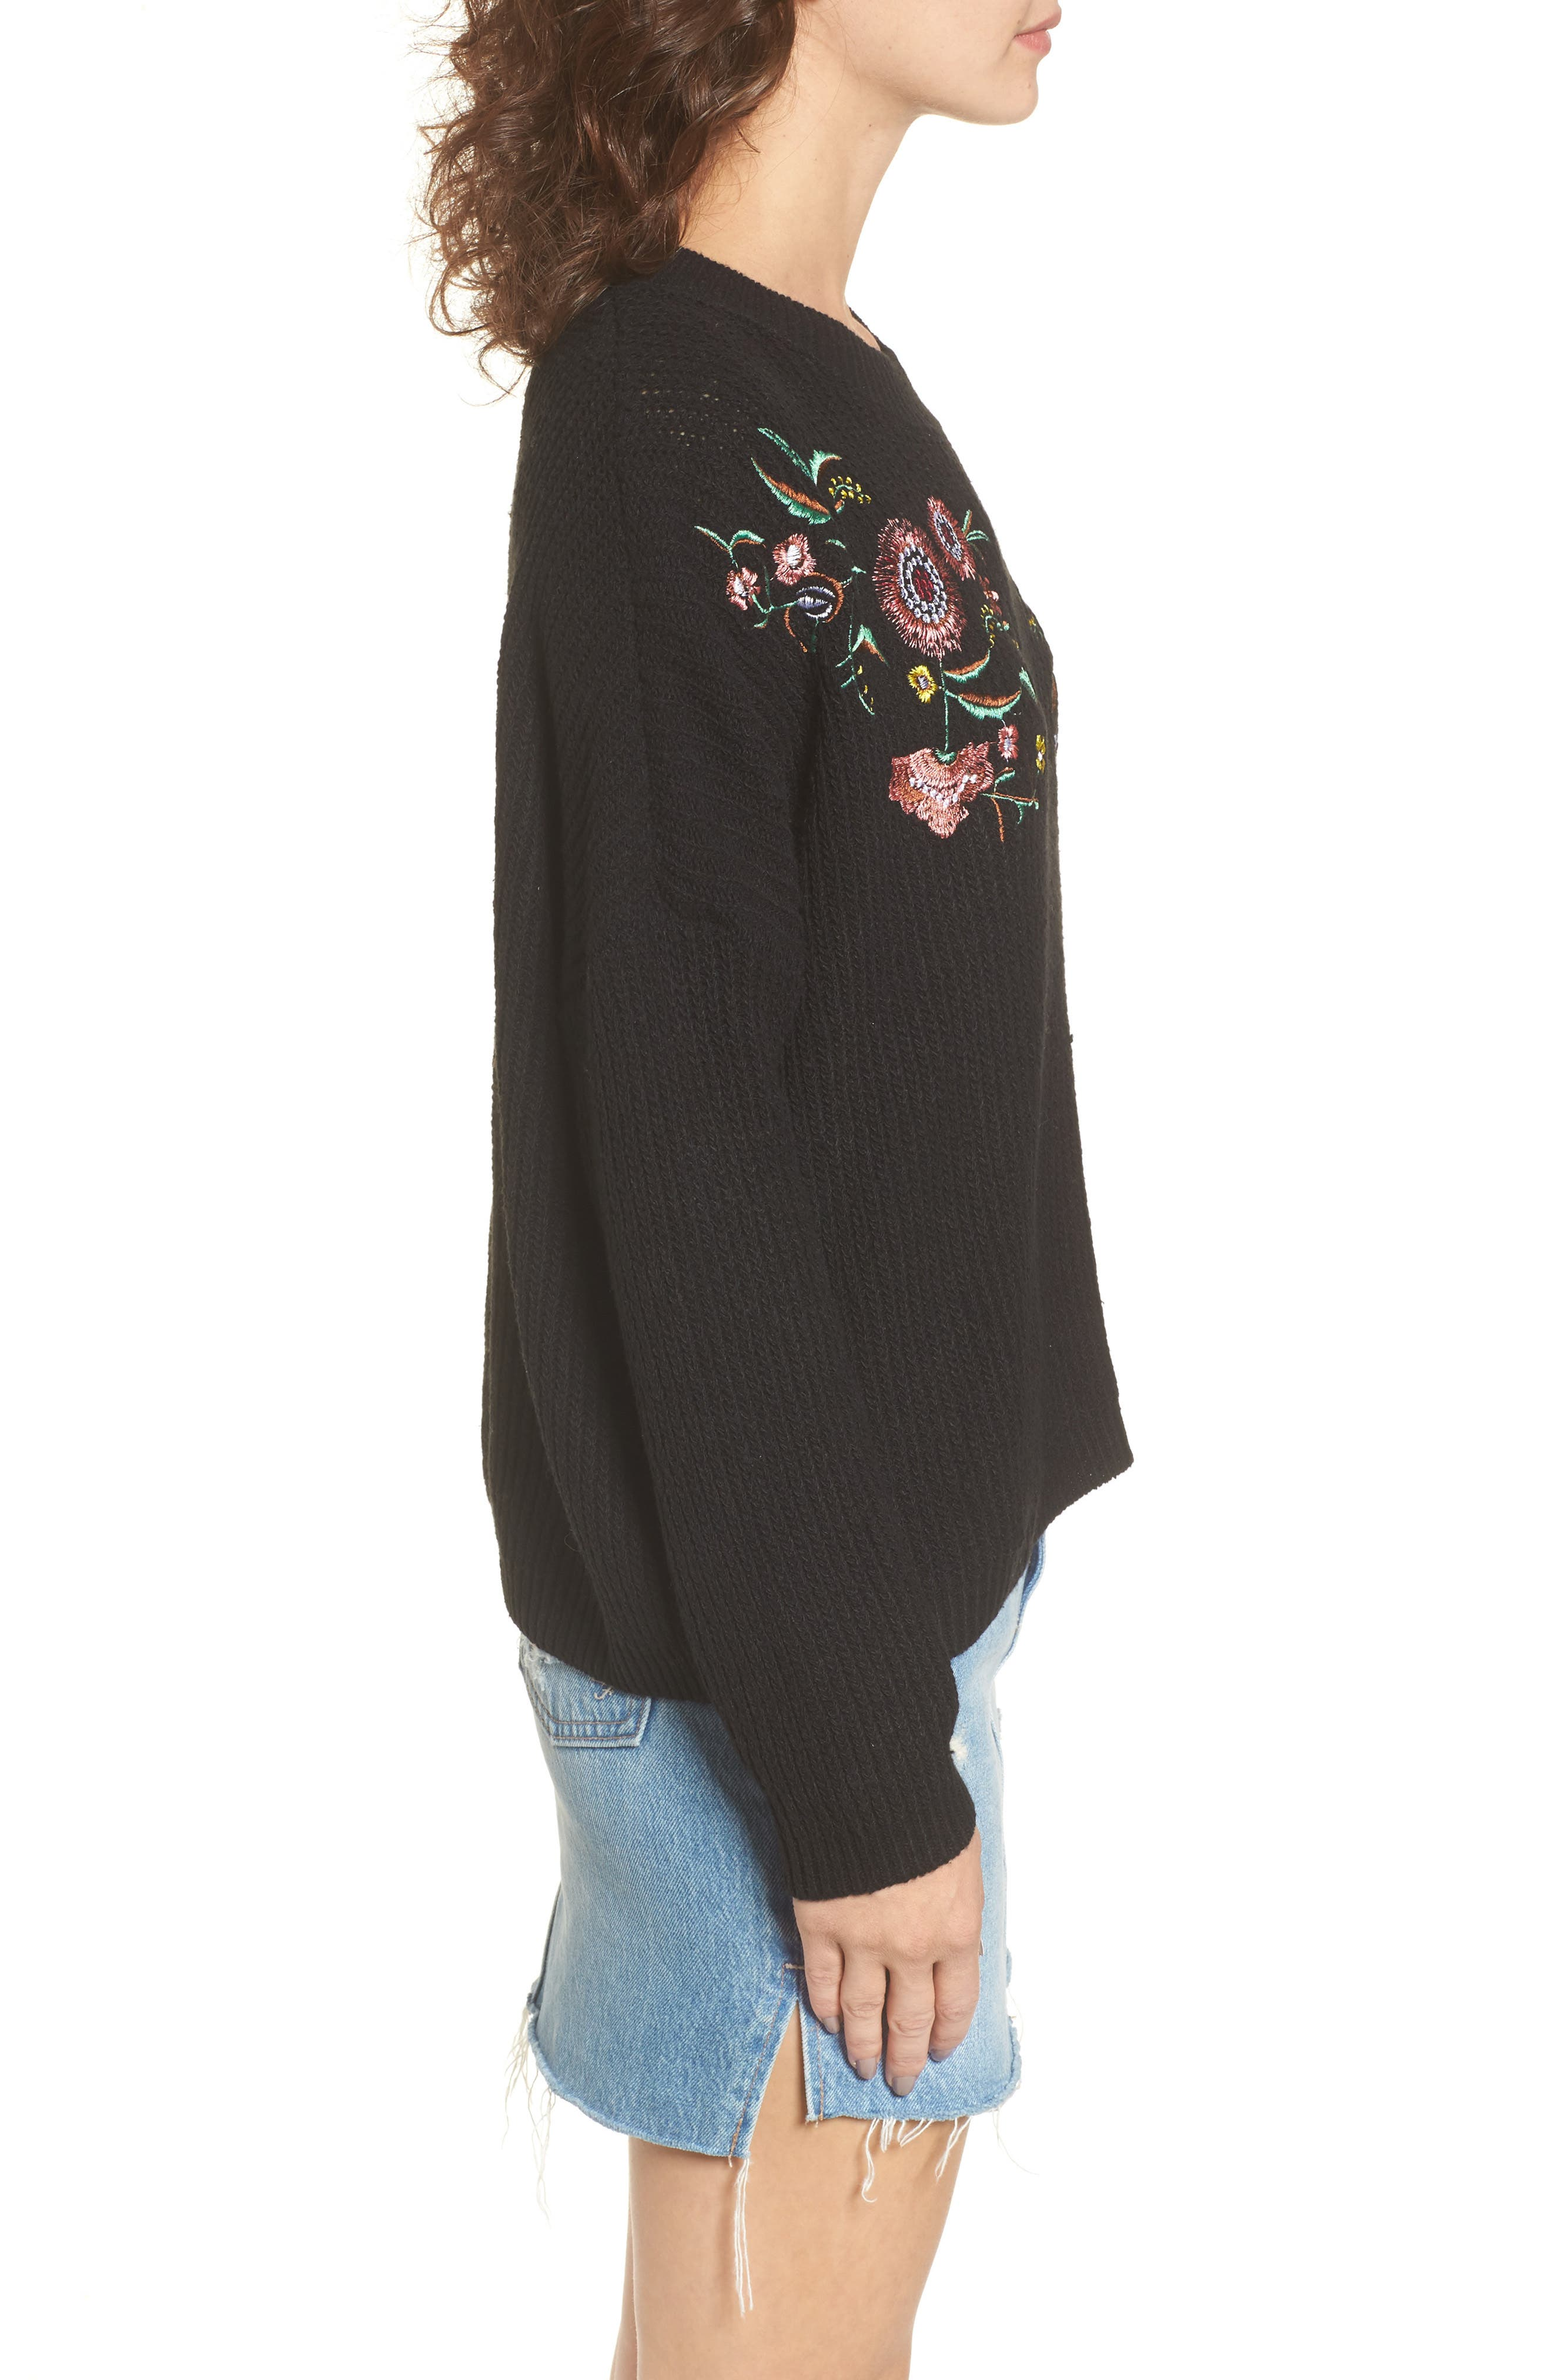 Alternate Image 3  - Woven Heart Embroidered Floral Sweater